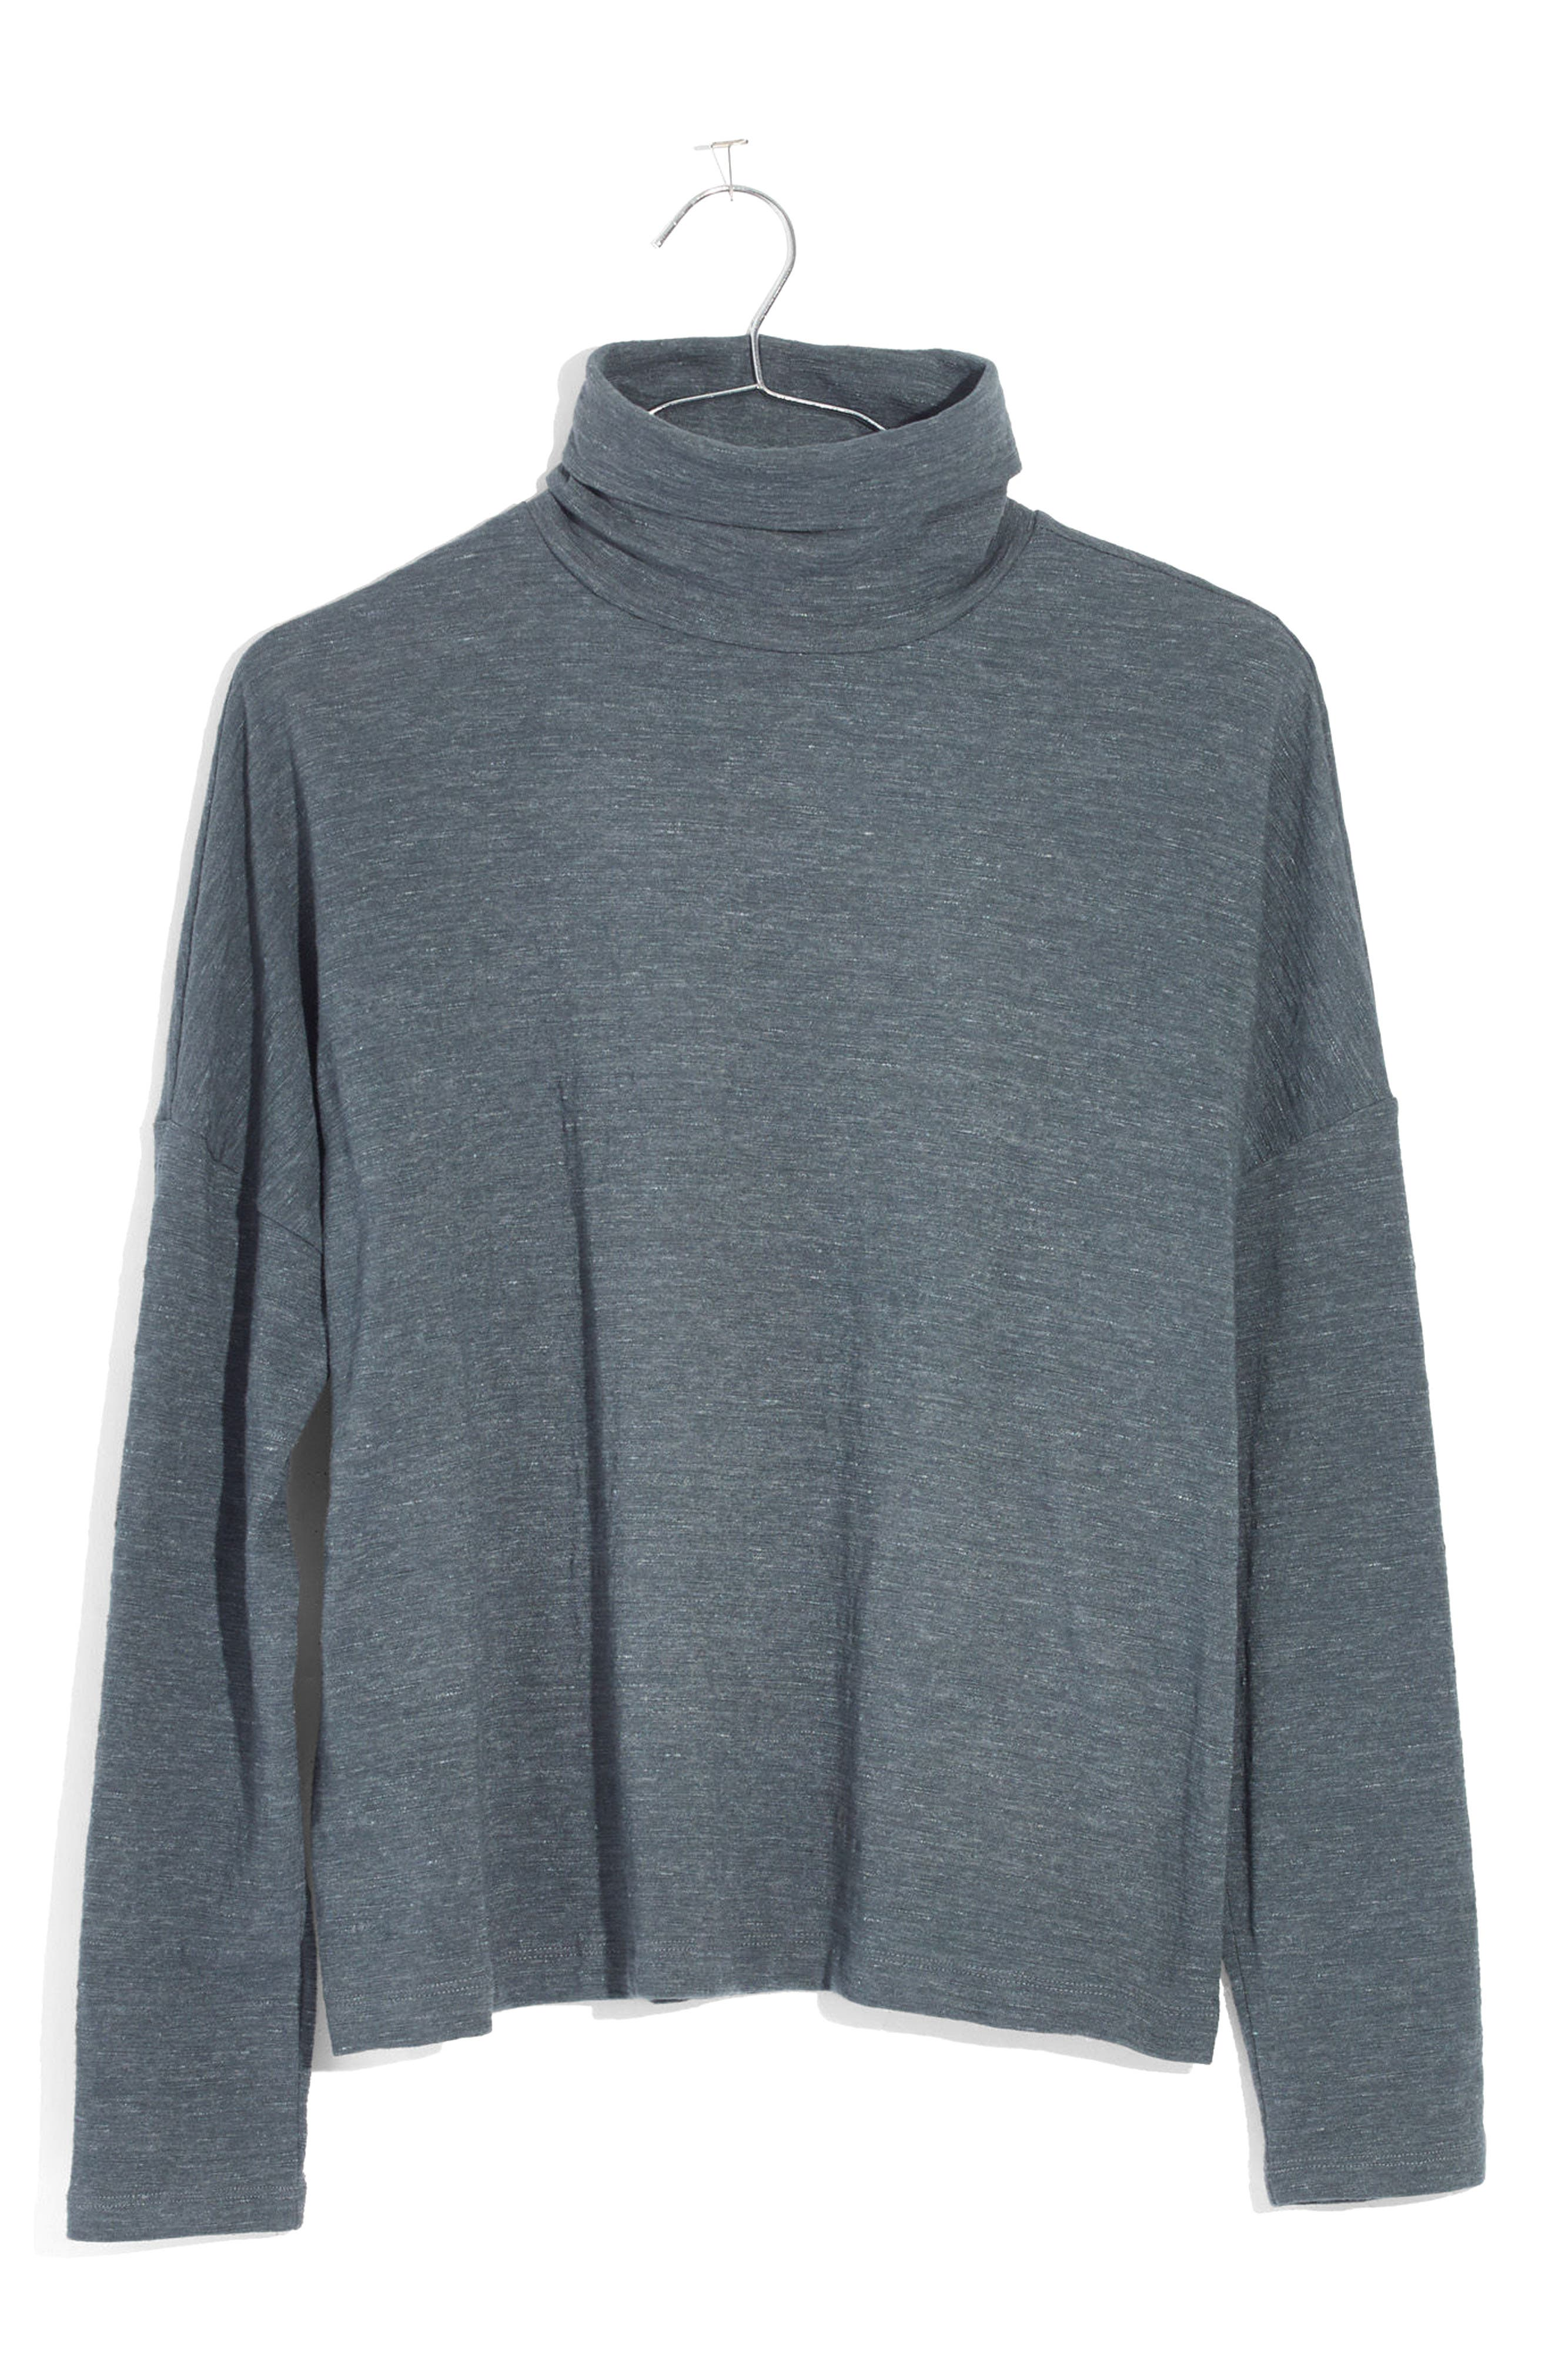 Madewell Boxy Turtleneck Top